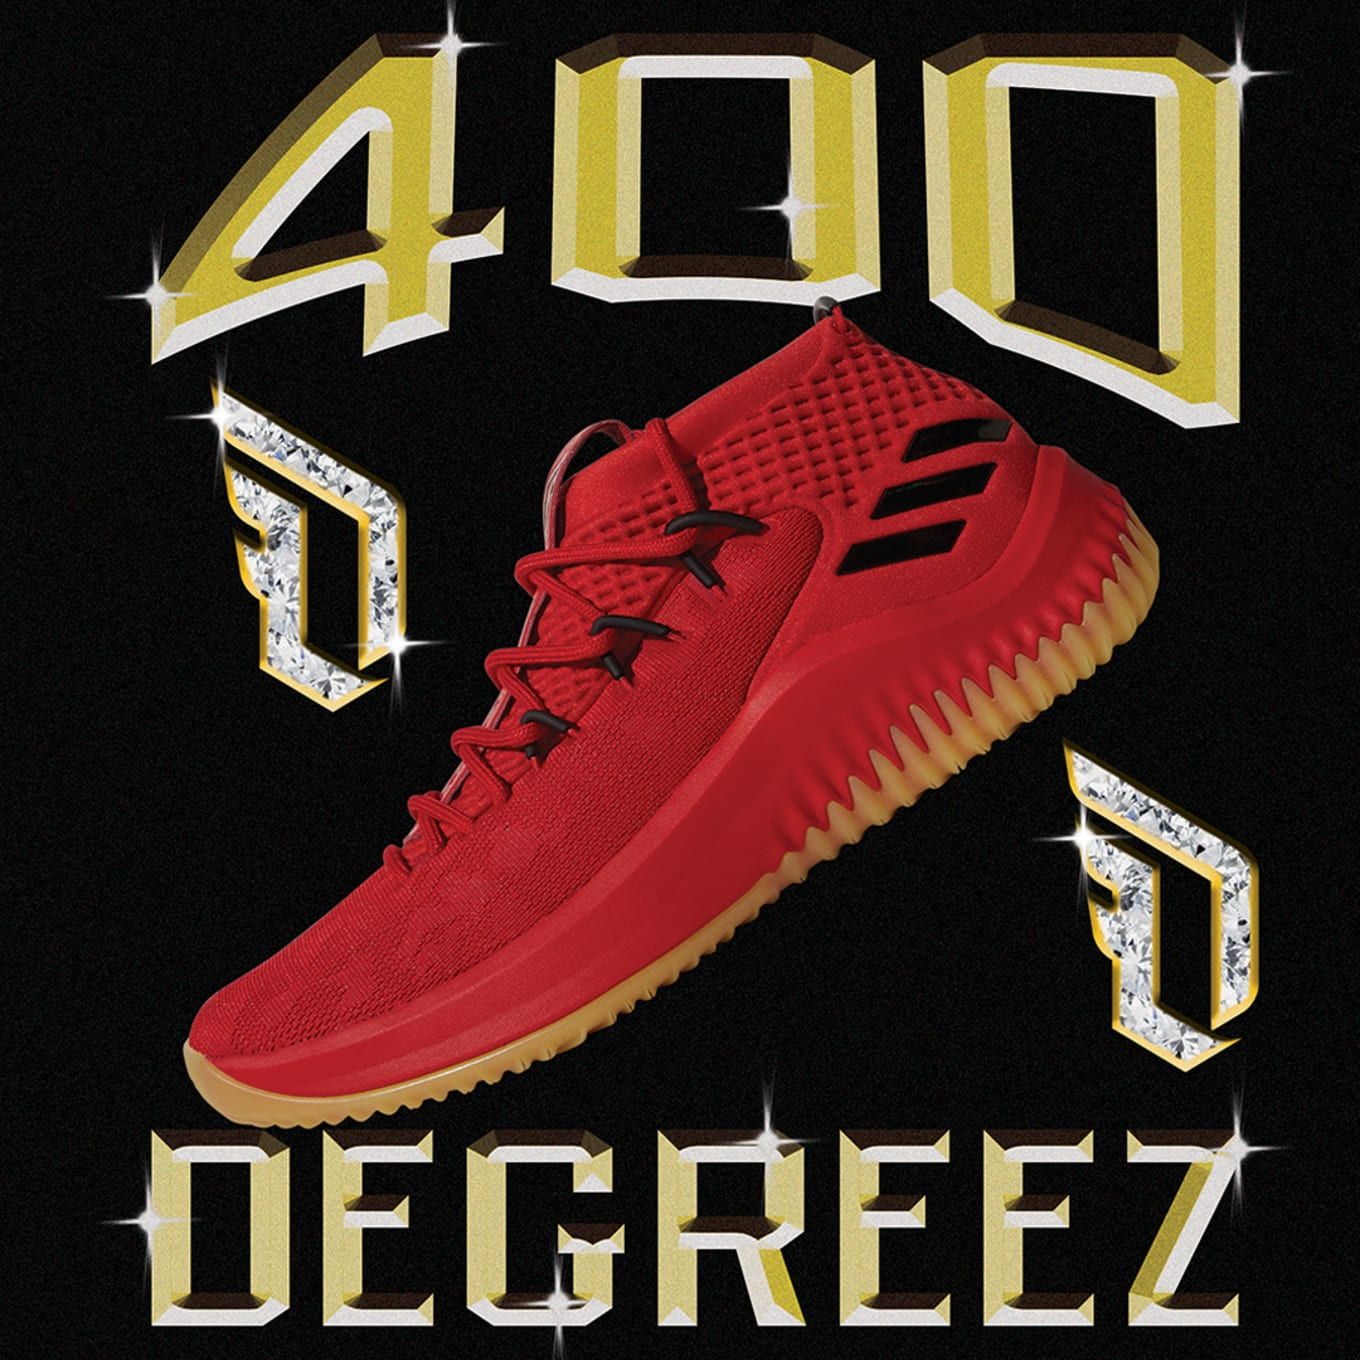 new product 2d2f6 ee6a6 promo code for 2018 new adidas dame 4 400 degreez red gum scarlet high  resolution red f24f5 0a379 new zealand adidas dame 4 80081 2bf8b